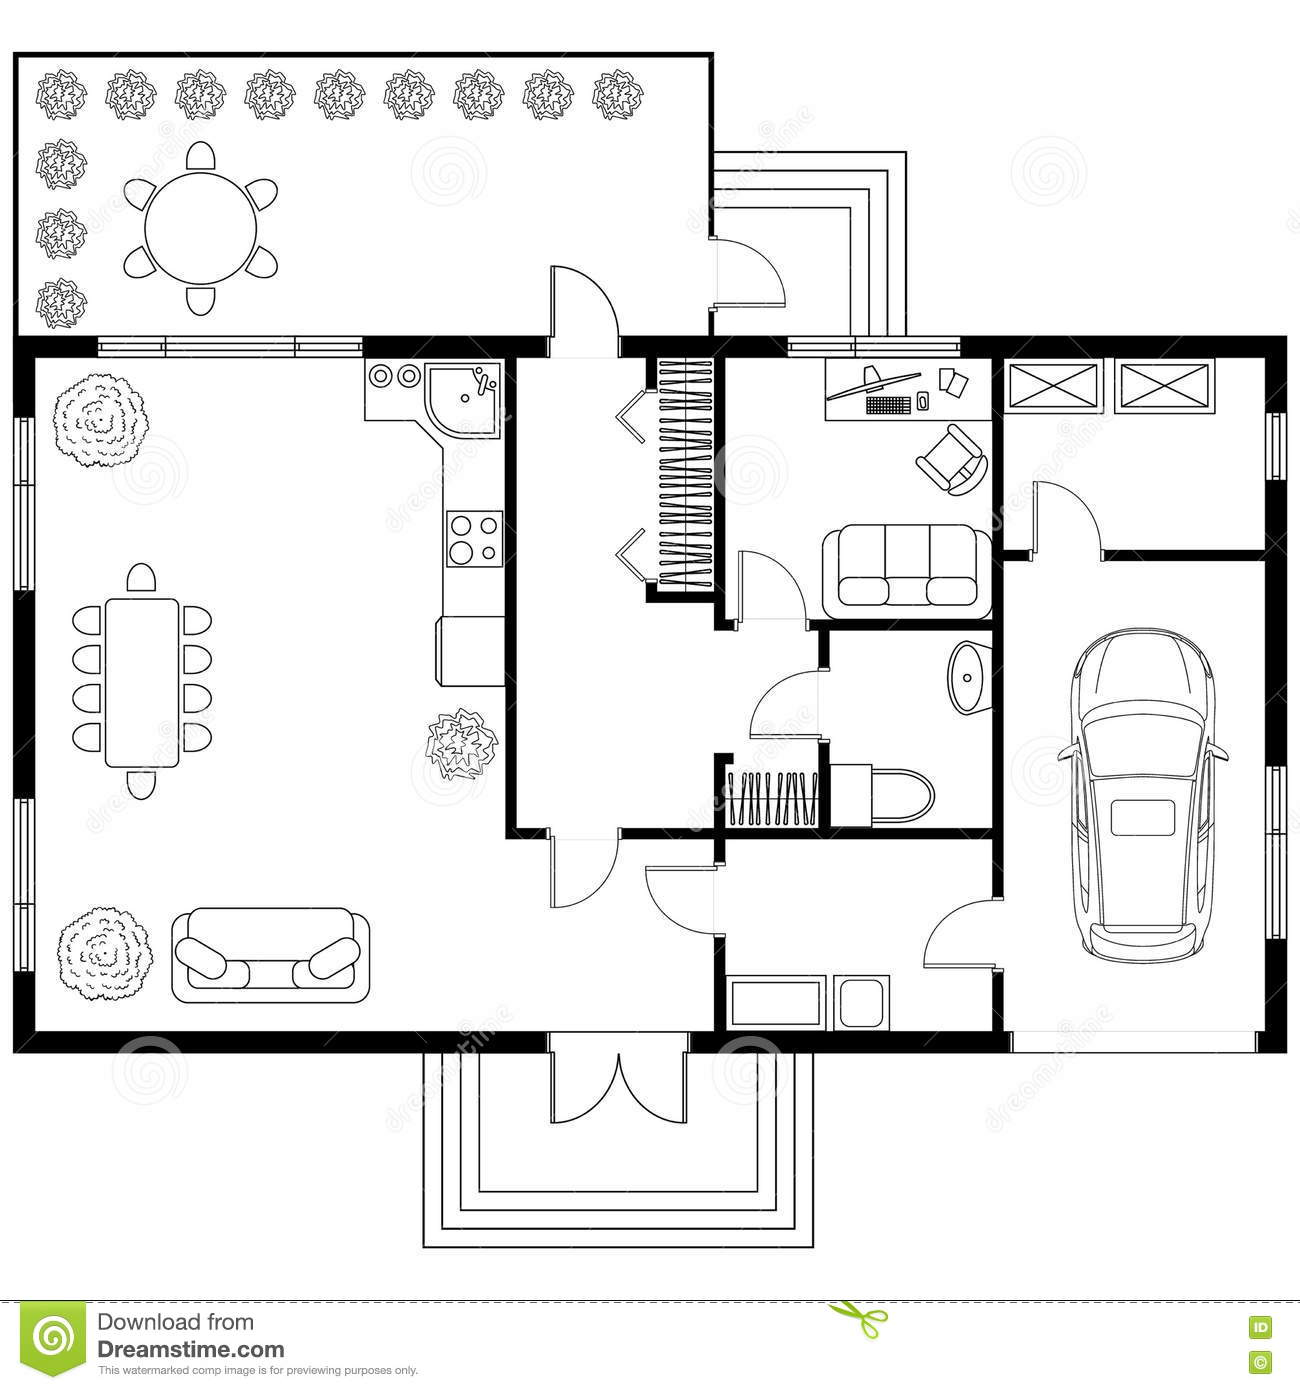 Plan architectural d 39 une maison avec le garage for Architecture de plan libre